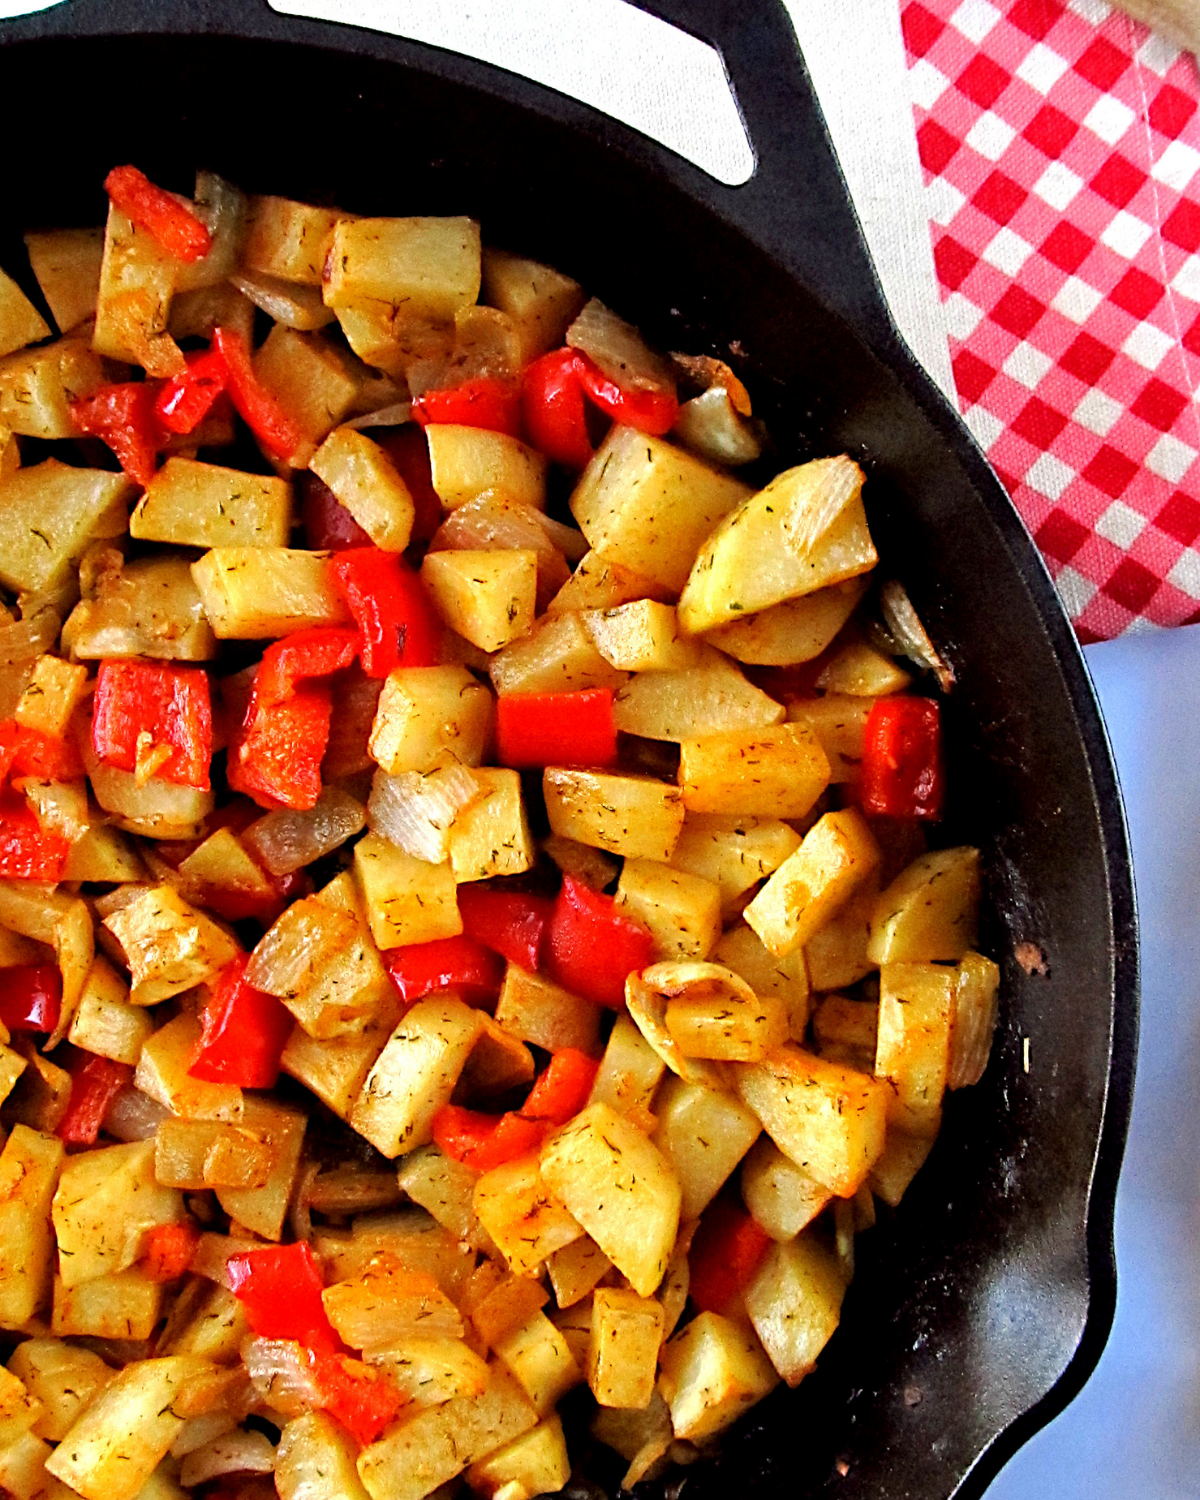 Easy Skillet Potatoes with Smoked Paprika and Dill